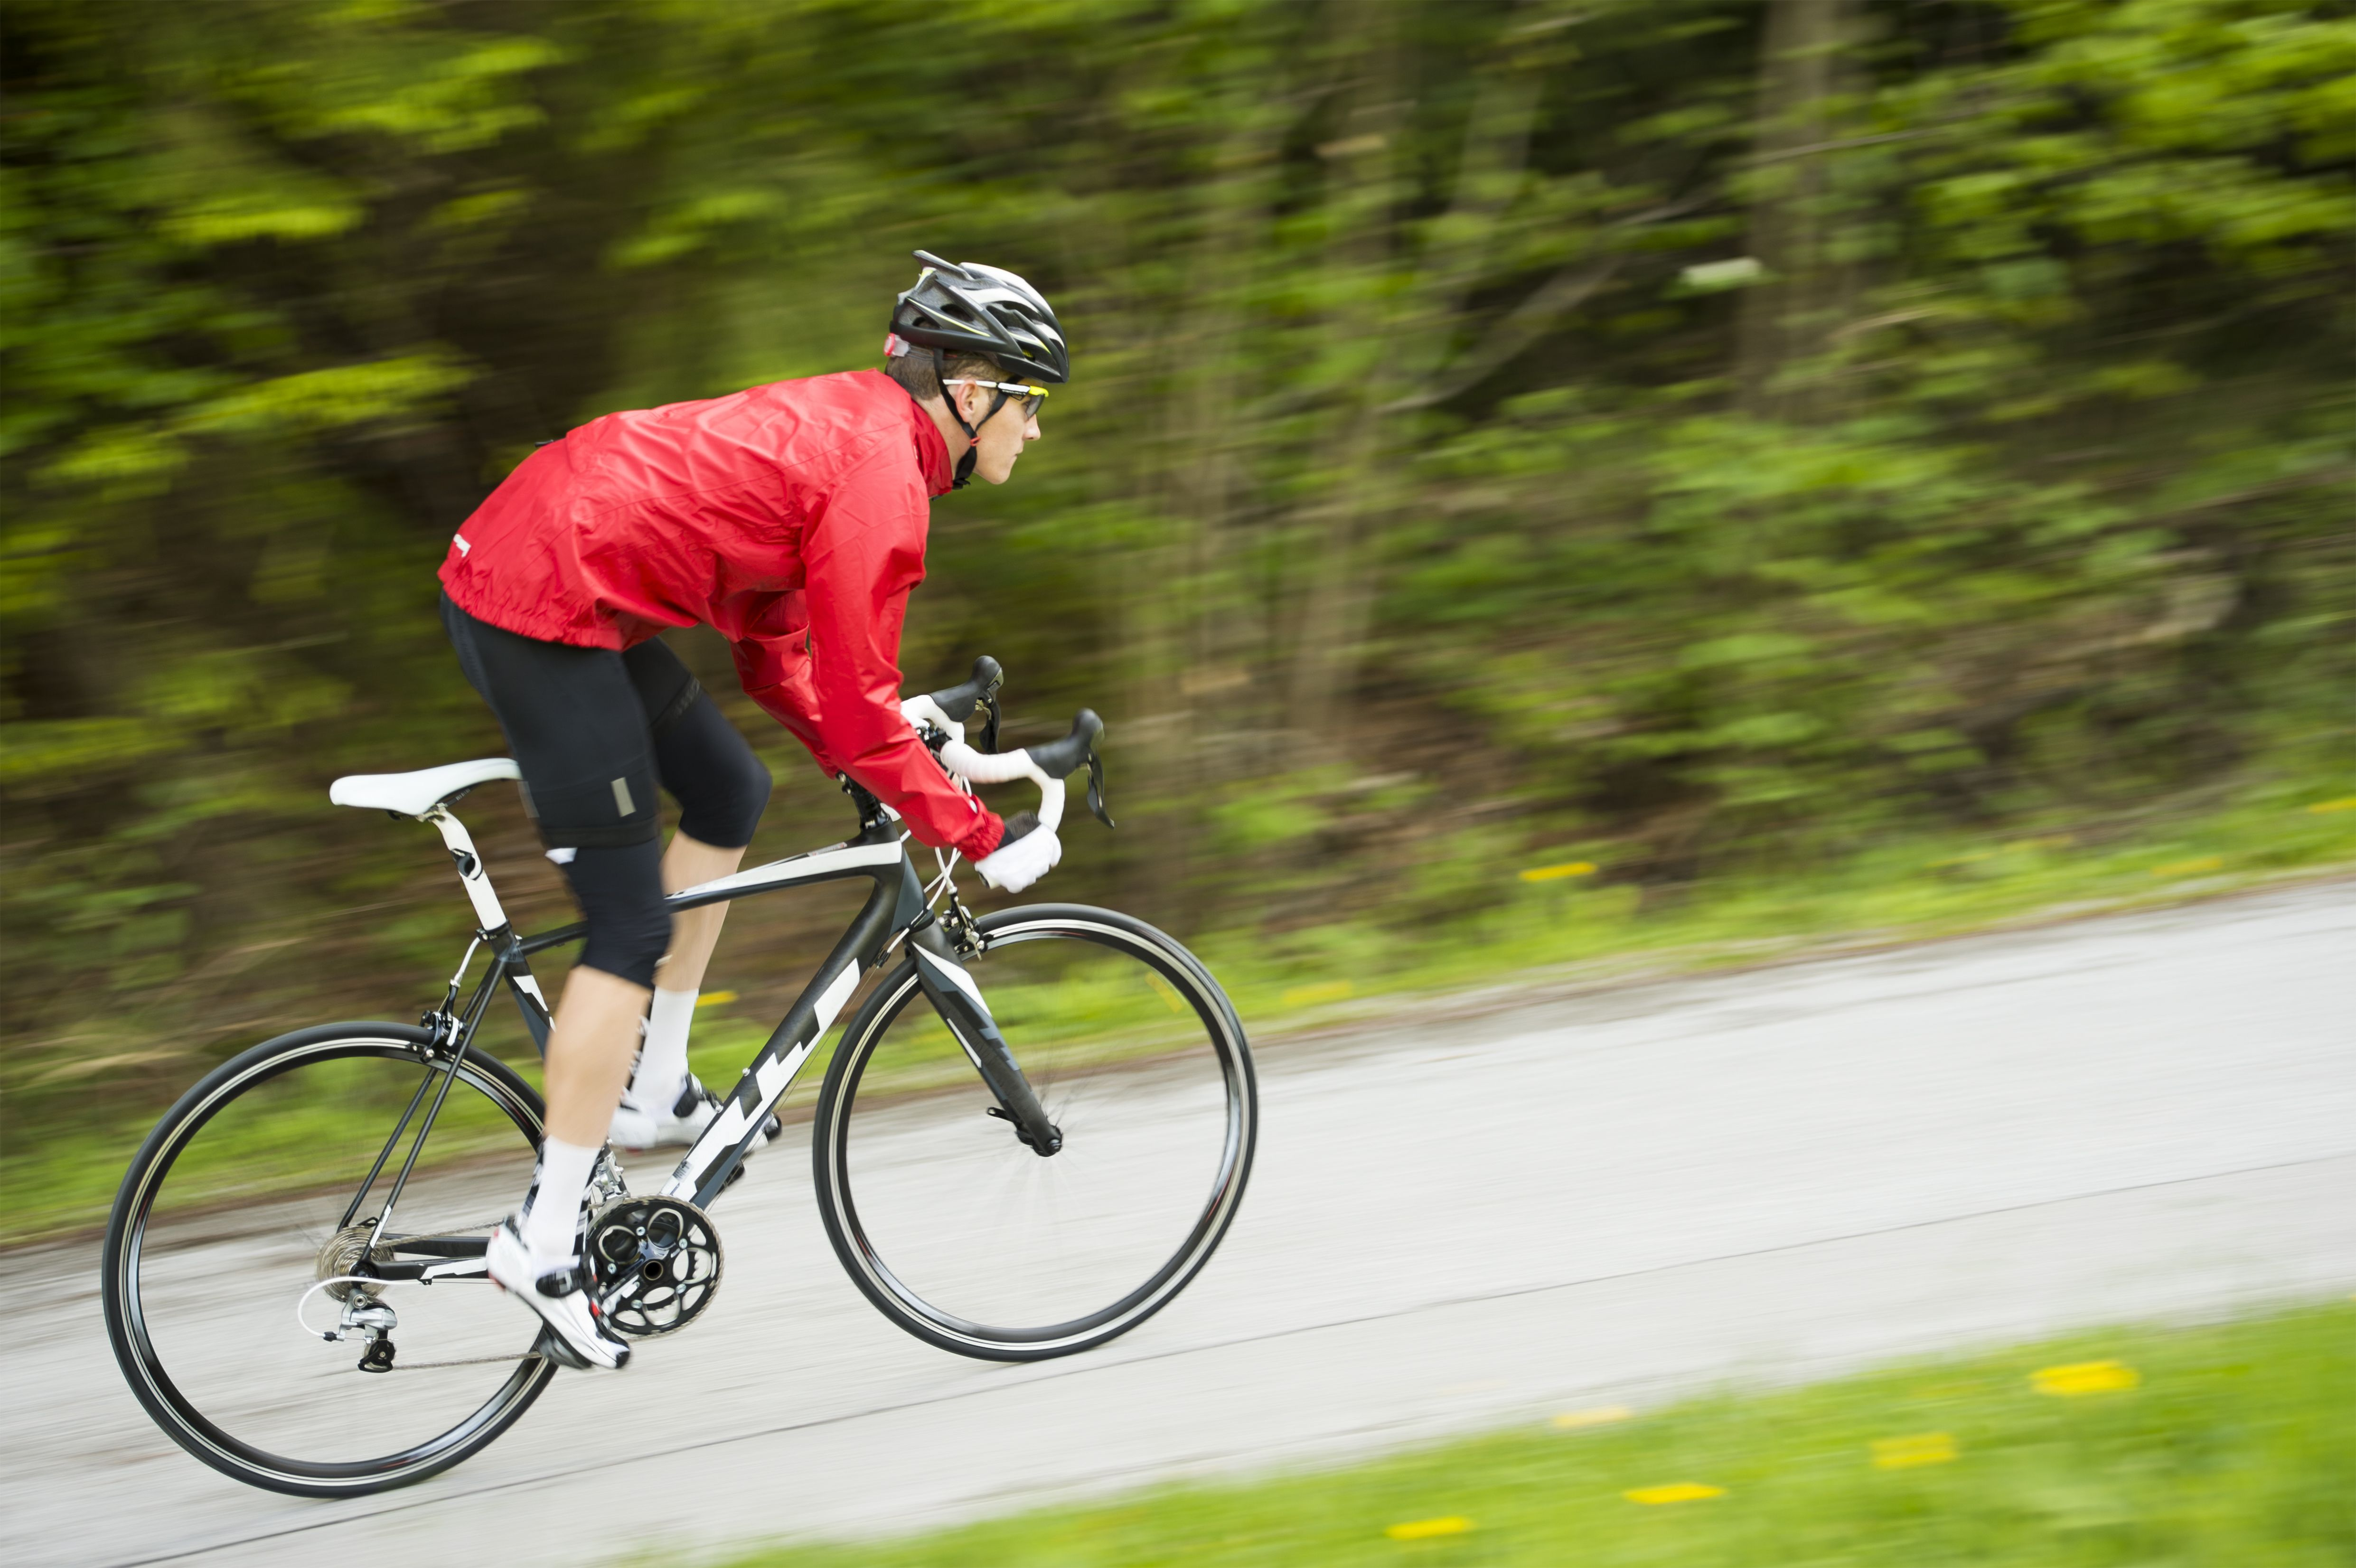 Cyclist in red shirt practicing